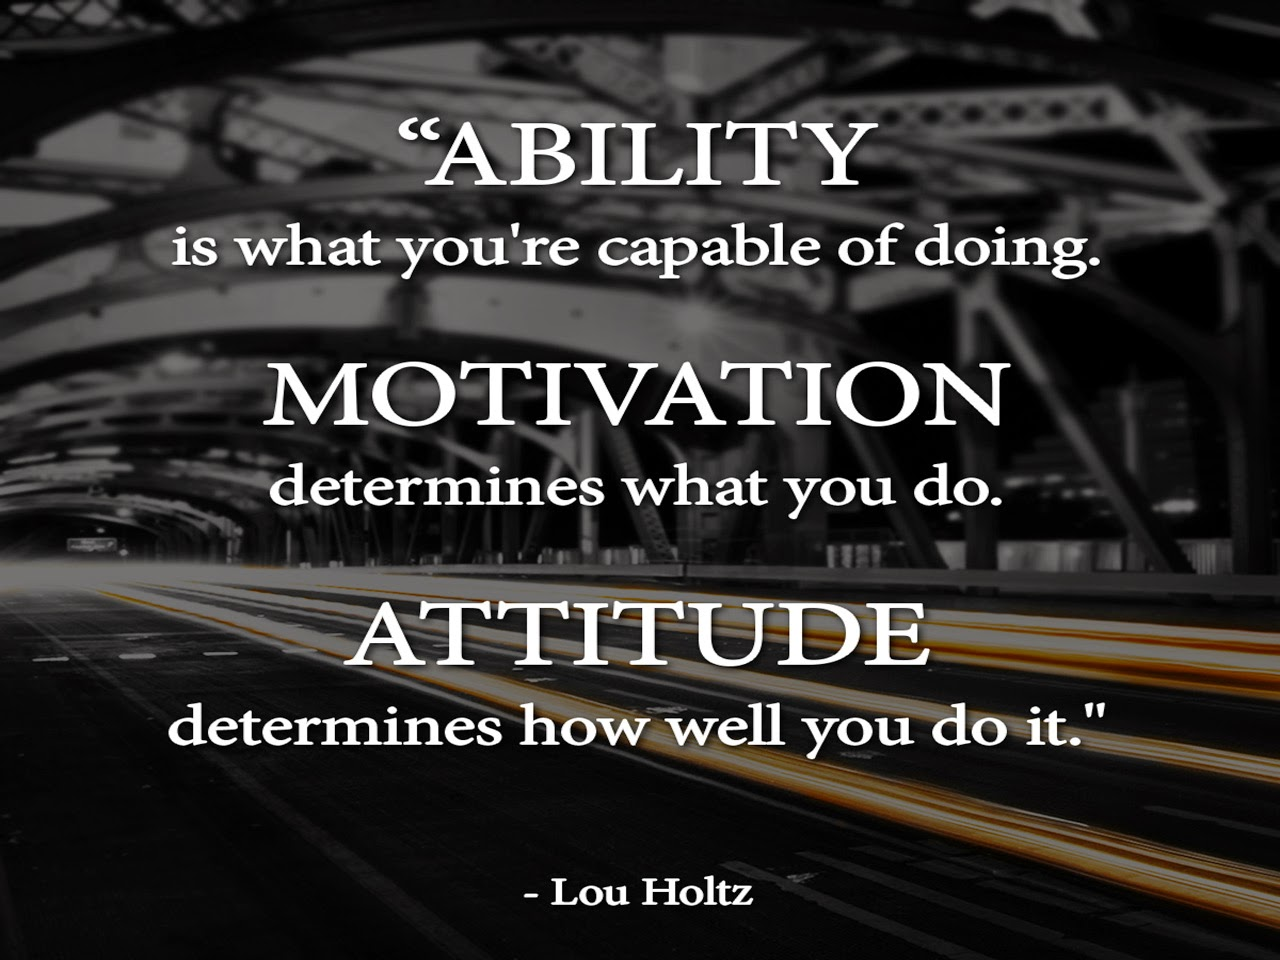 Quotes Motivation And Inspiration: Motivational Quotes And Sayings For Success With